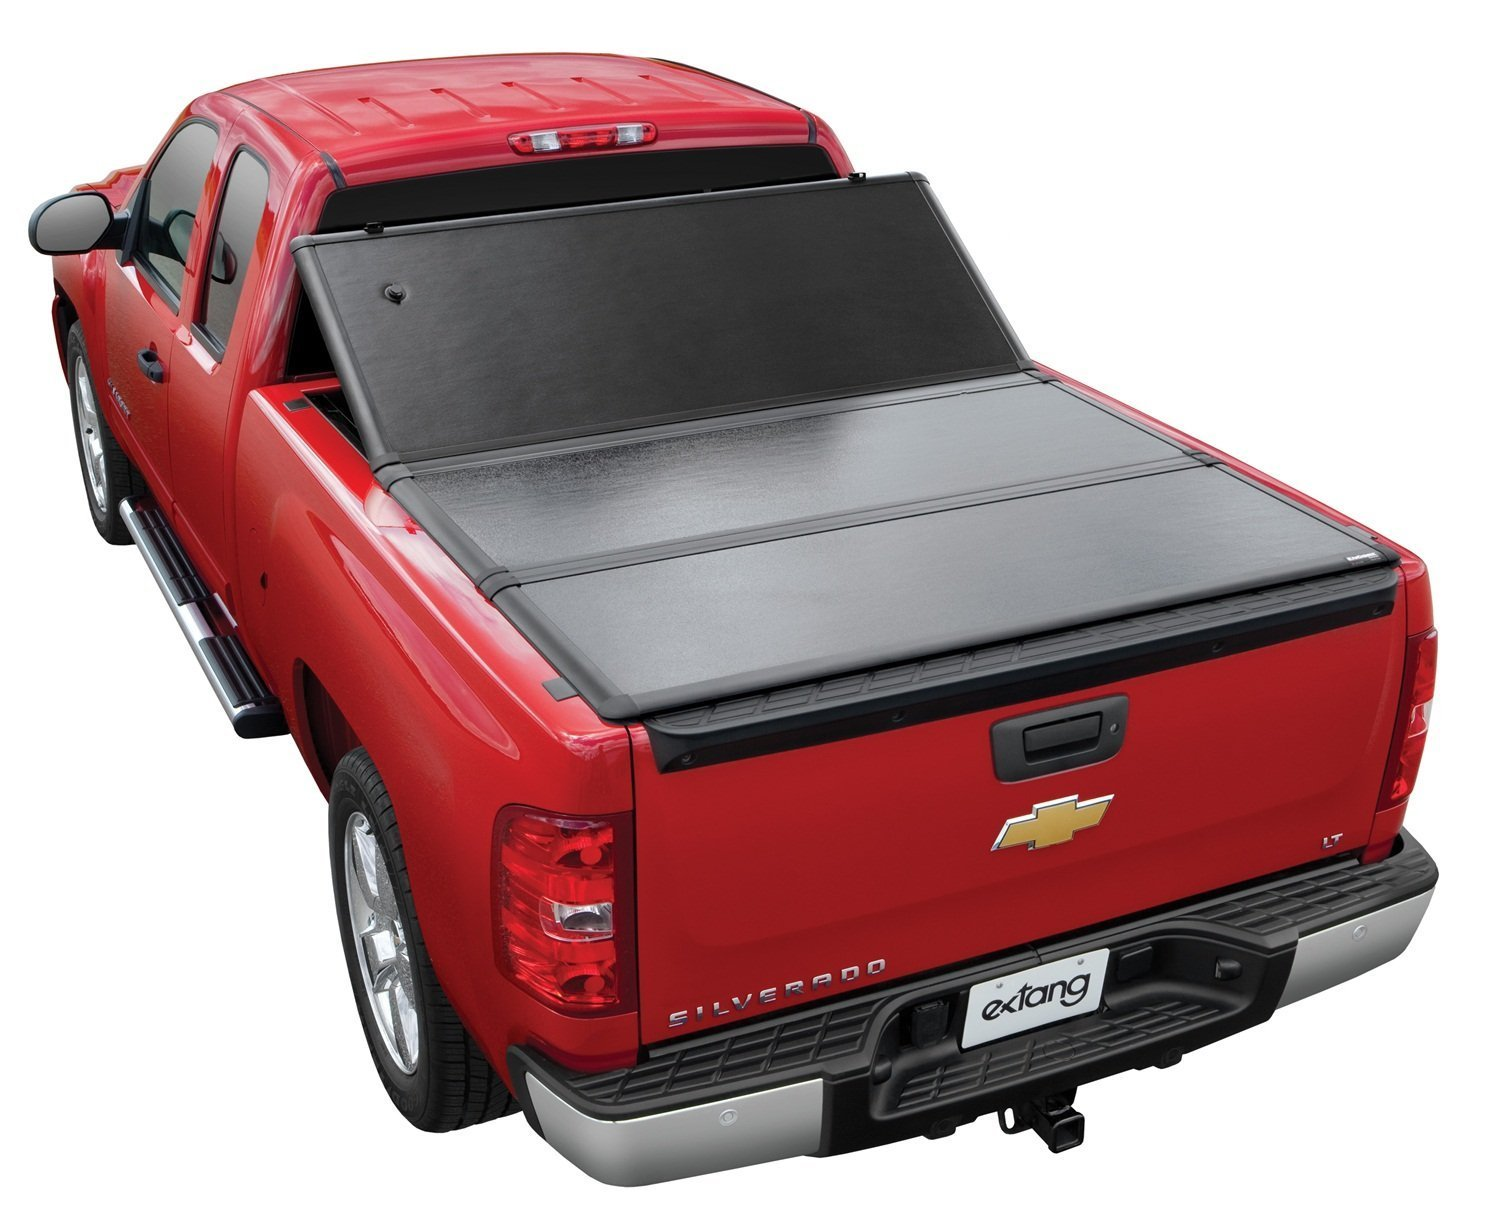 2017 GMC Sierra Hard Tonneau Covers:5 Best Rated hard Tonneau